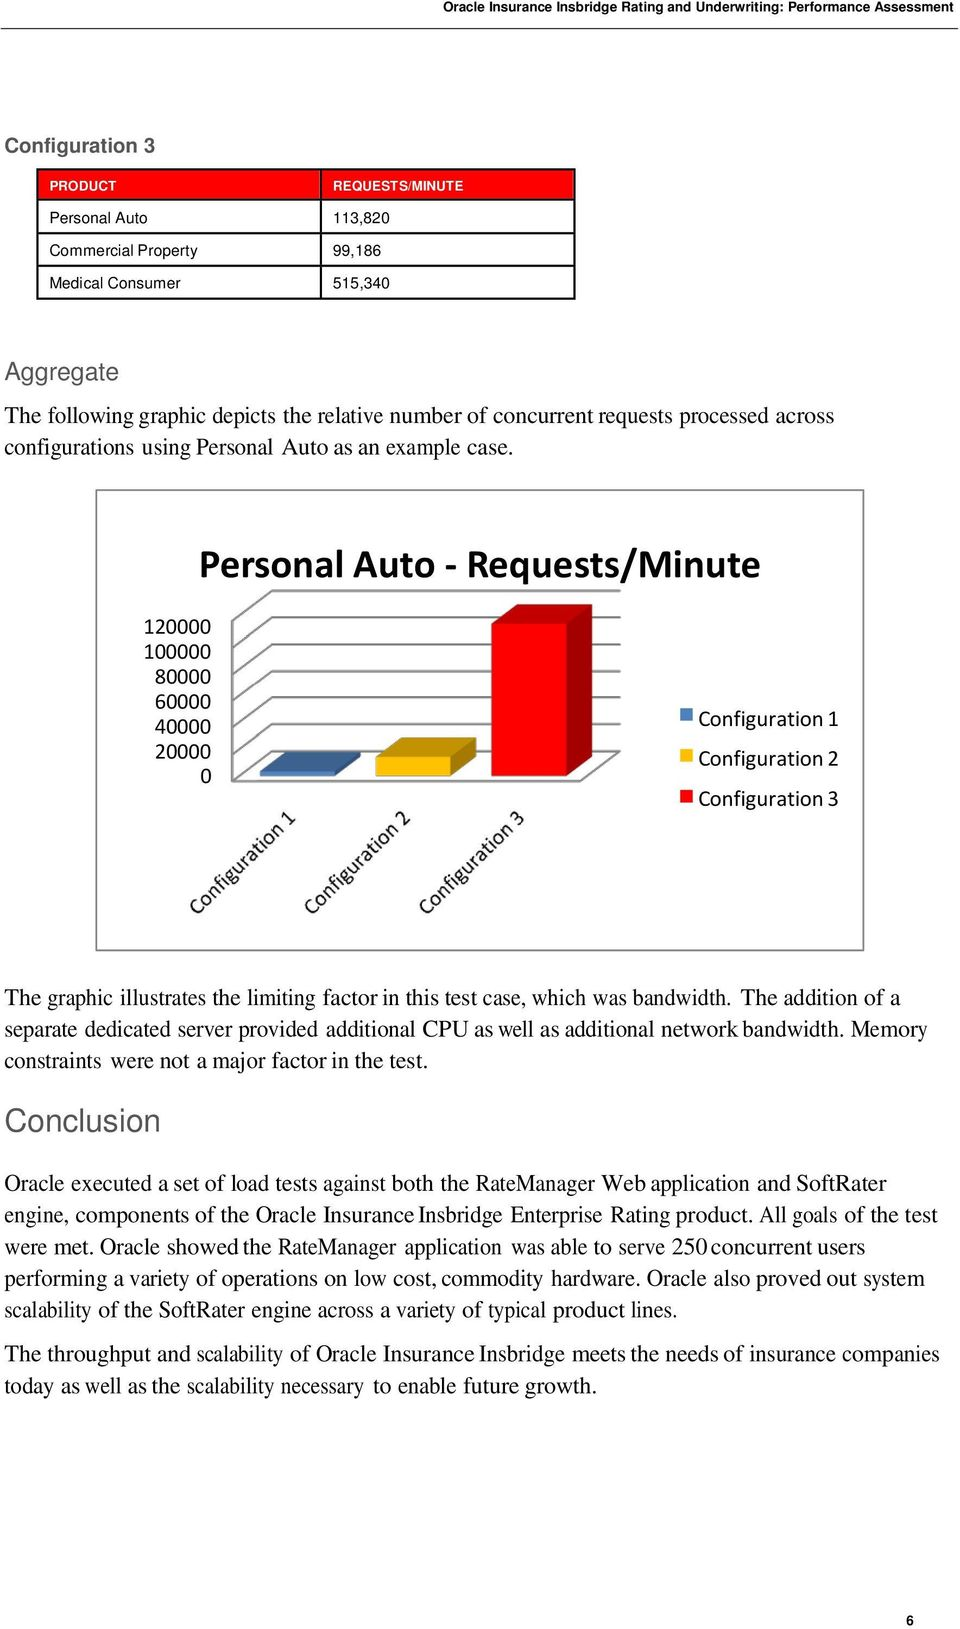 Personal Auto - Requests/Minute 120000 100000 80000 60000 40000 20000 0 Configuration 1 Configuration 2 Configuration 3 The graphic illustrates the limiting factor in this test case, which was